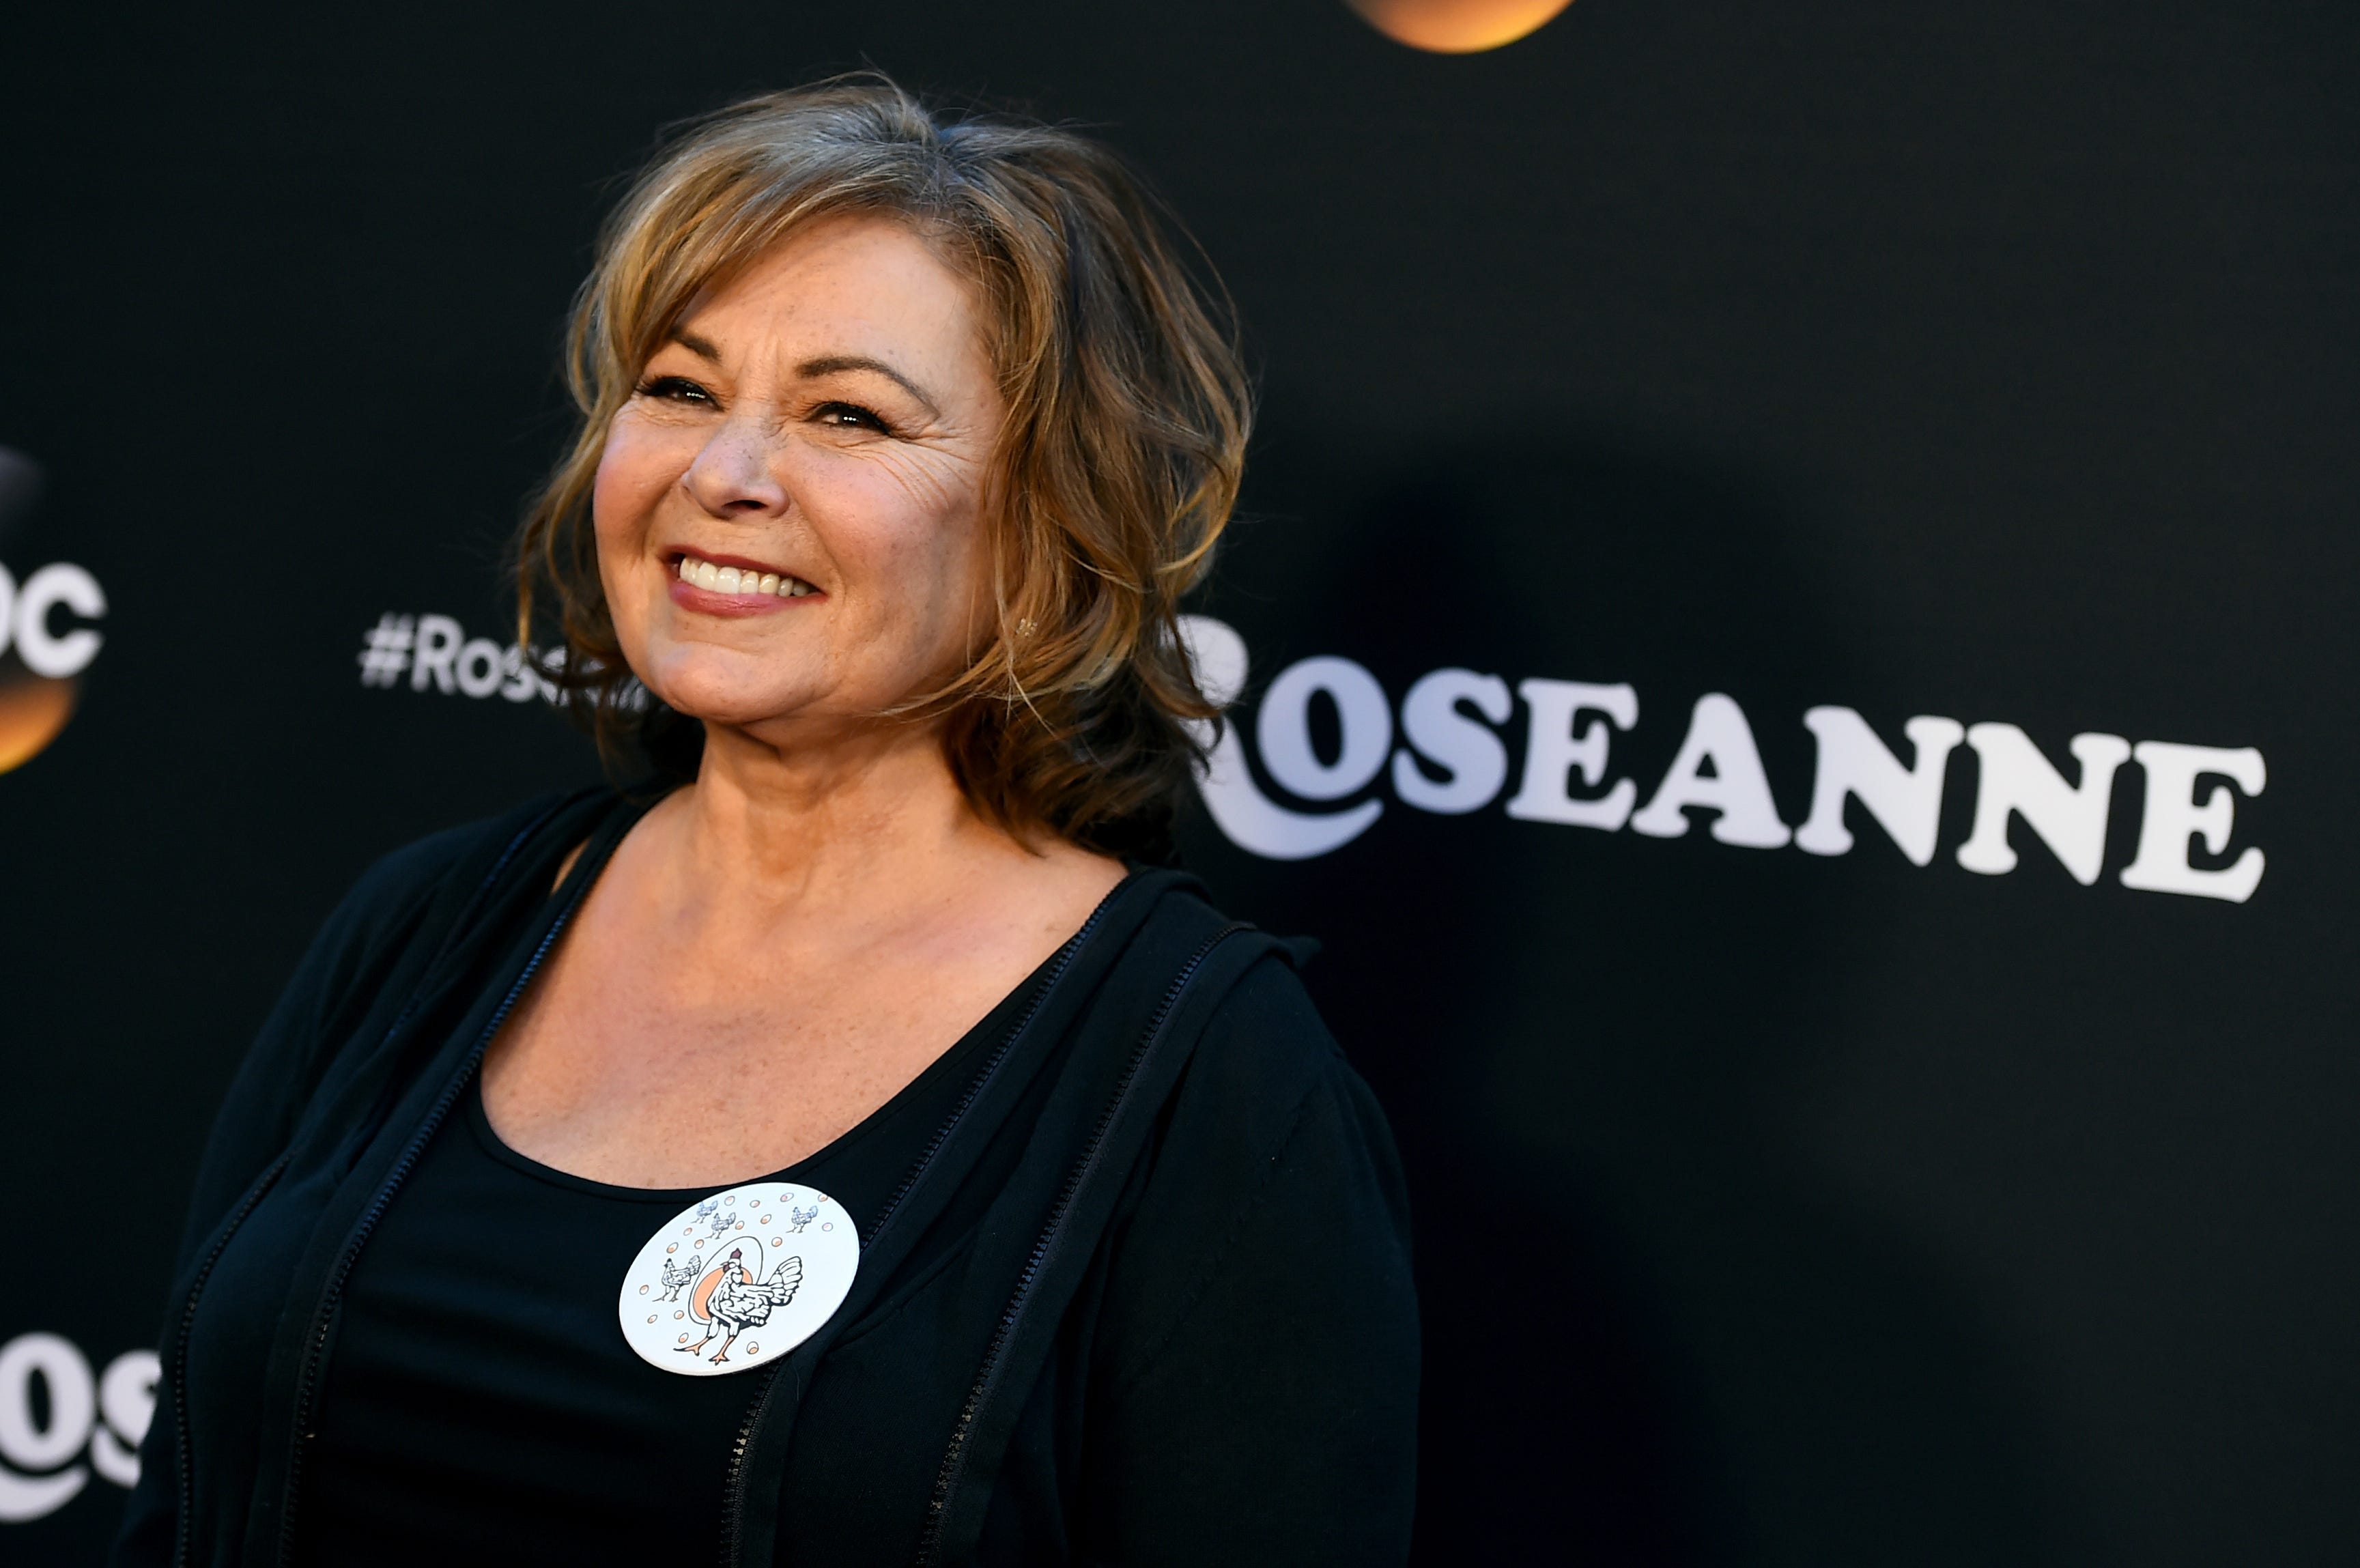 Ambien maker to Roseanne: Racism is not a side effect of our drug